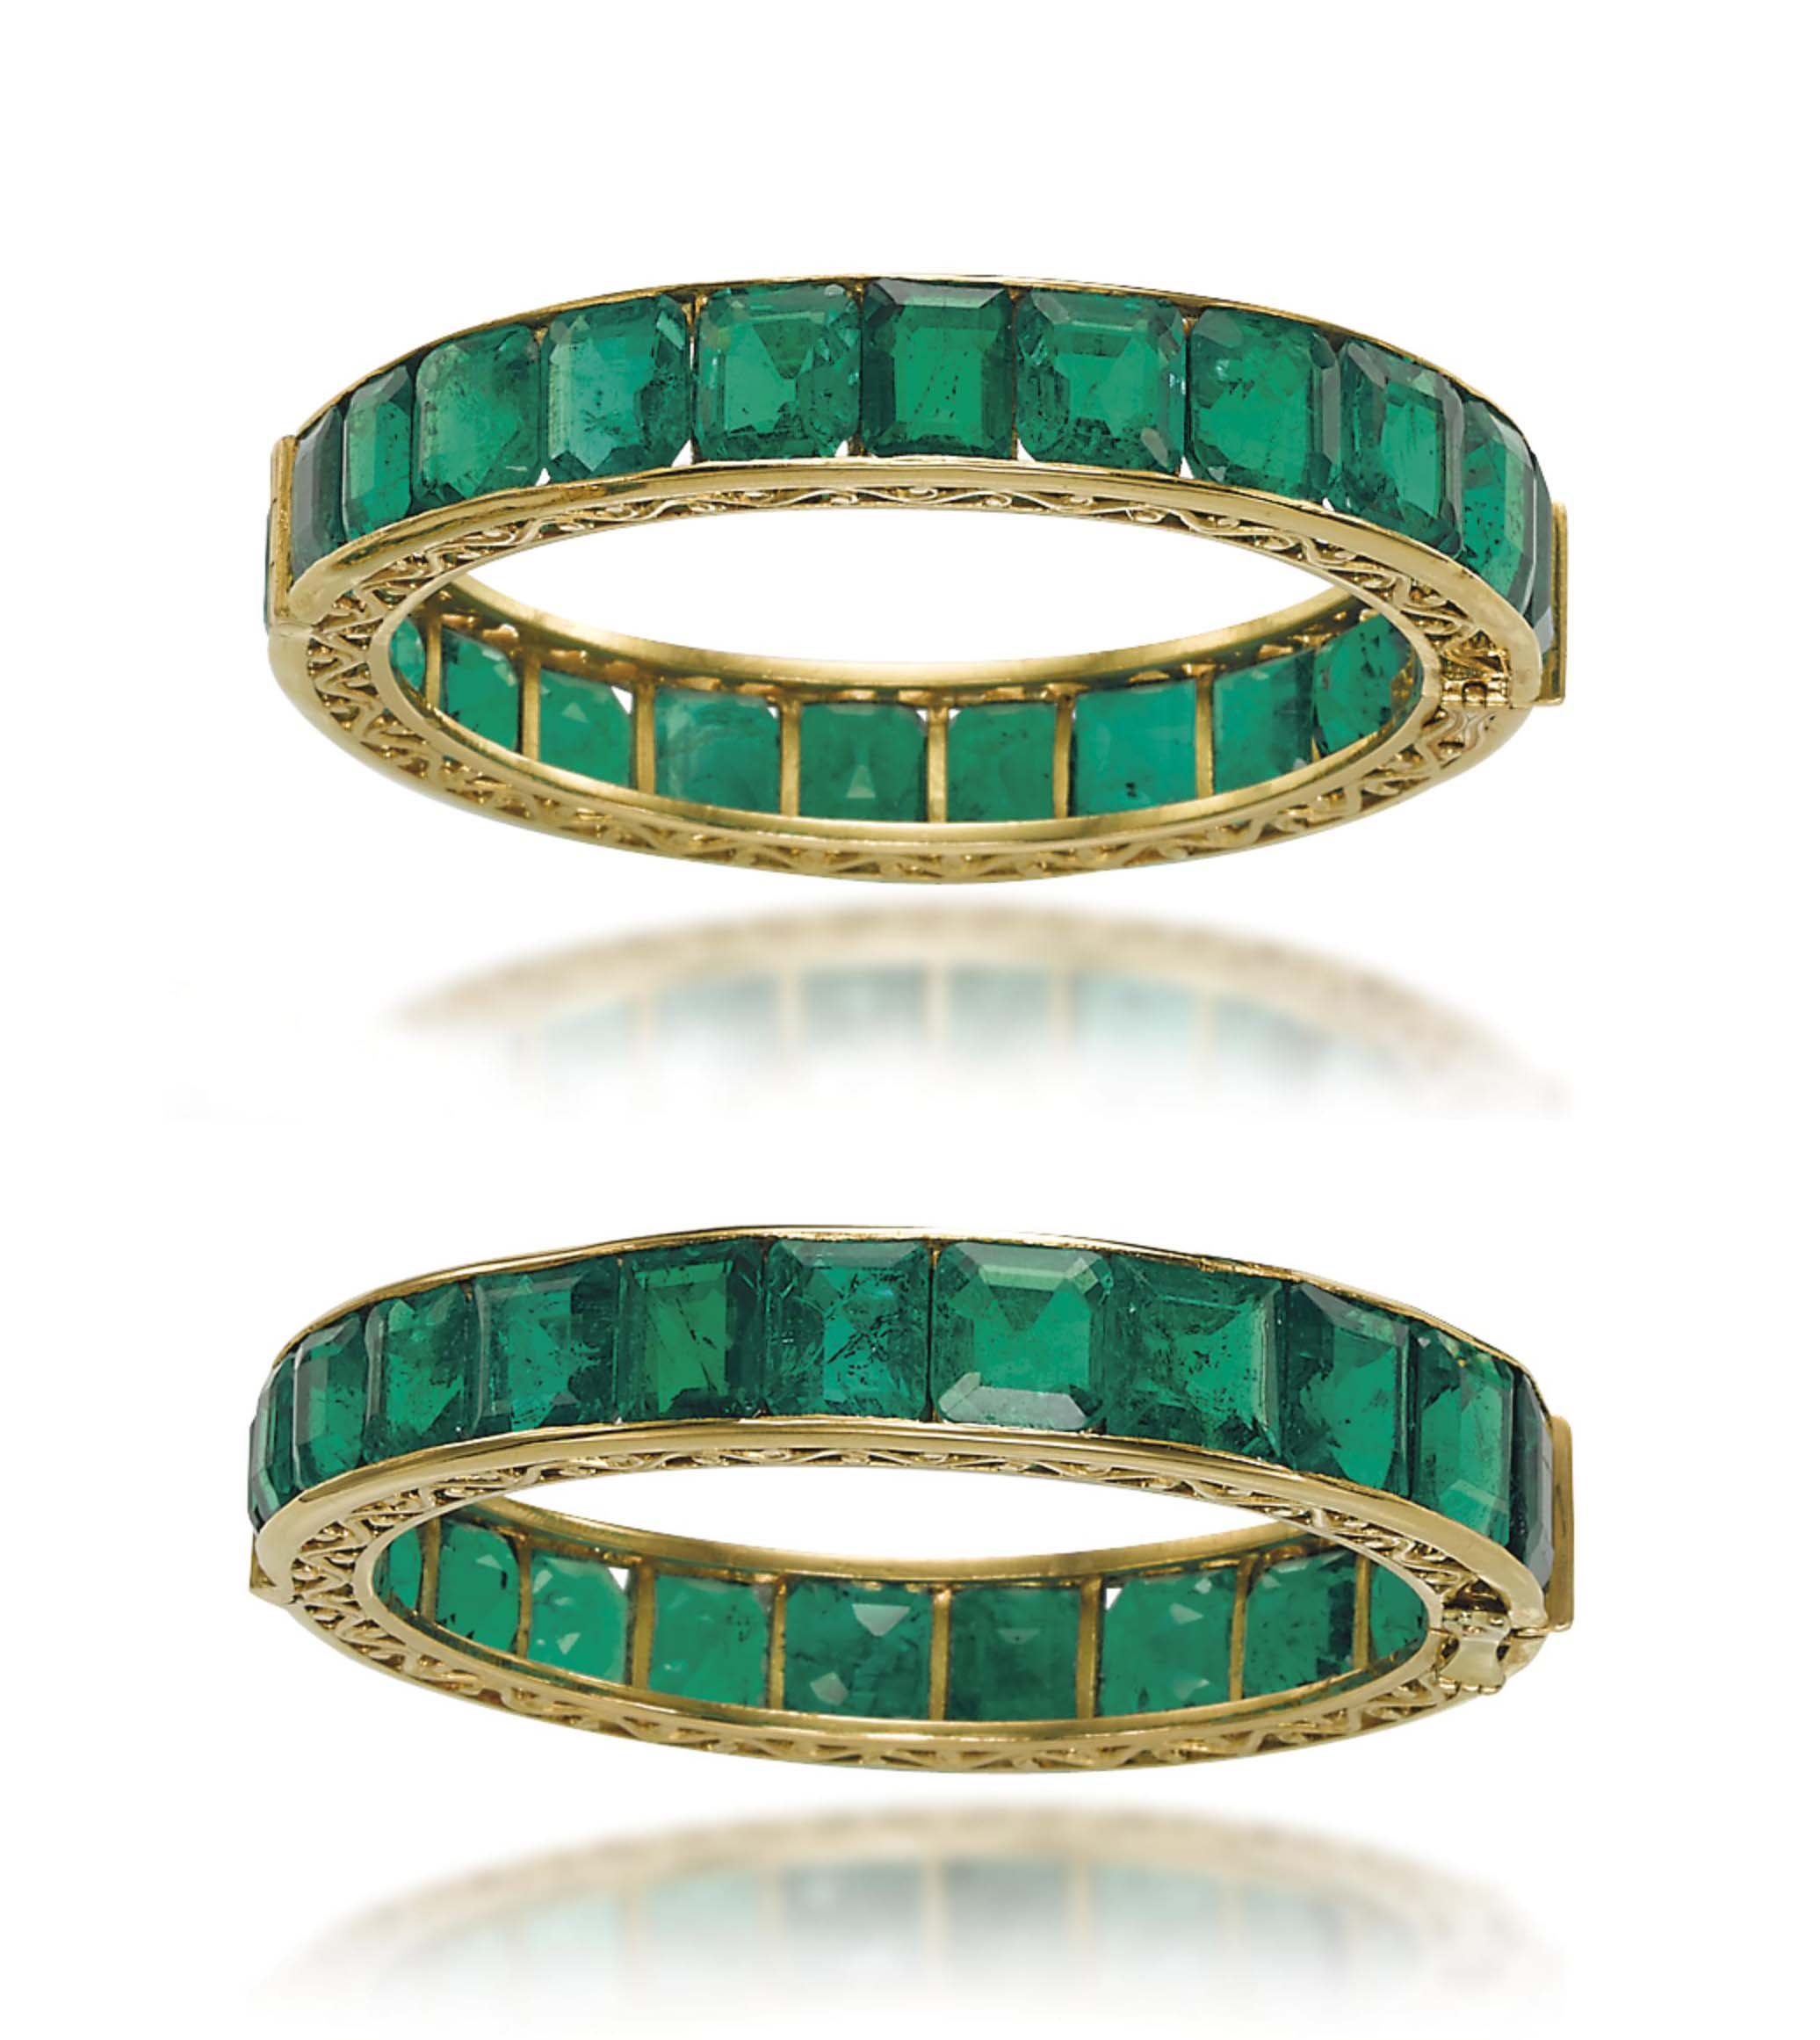 bangles bangle yr products griiham guarentee one designer polish medium on novelties emerald prasad